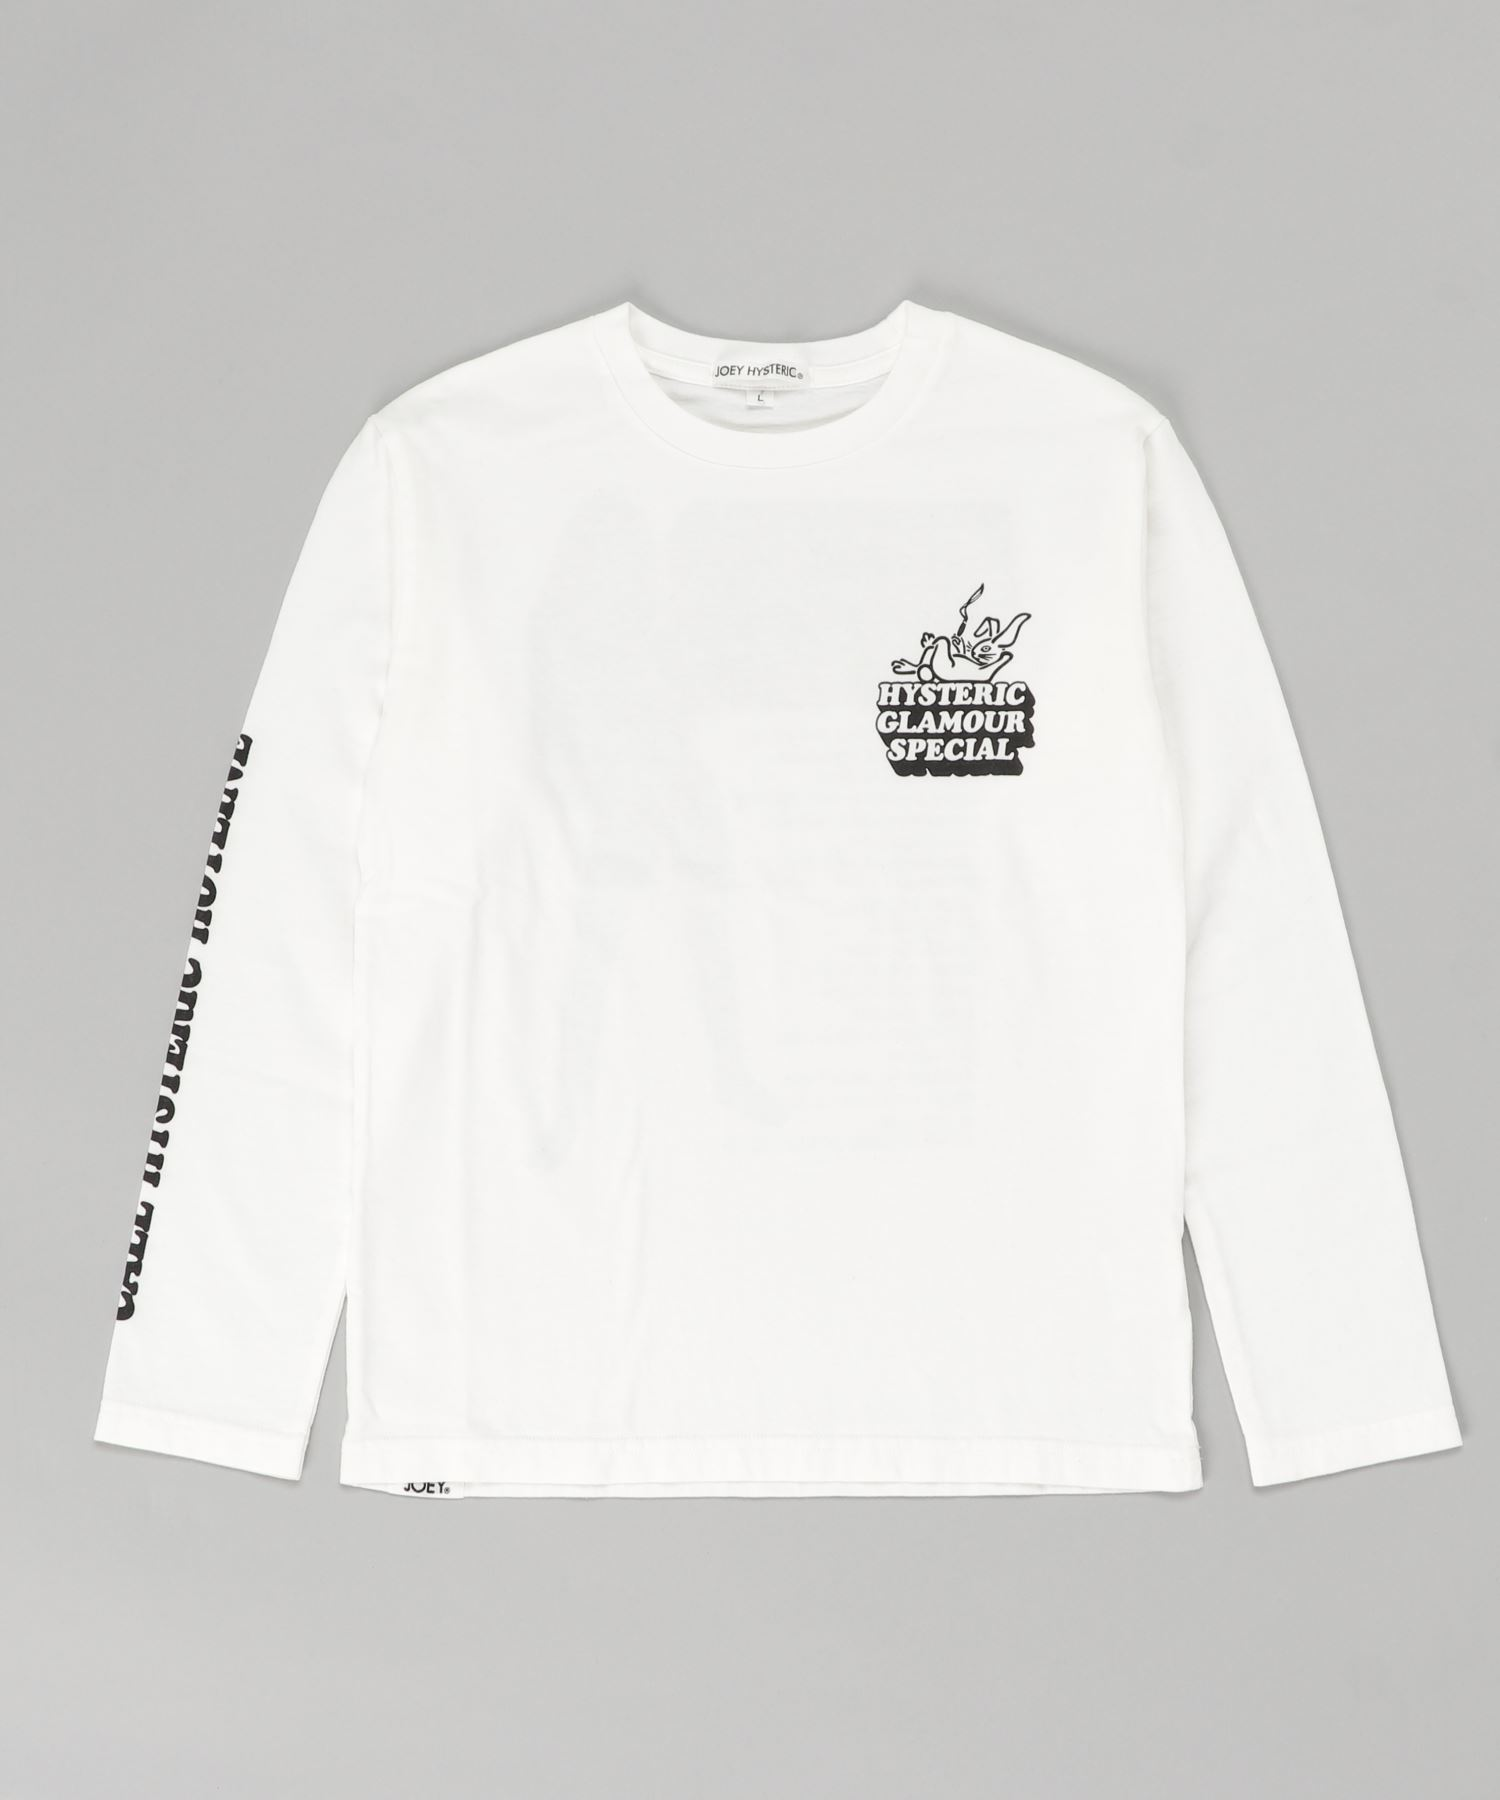 HYS SPECIAL Tシャツ【L】